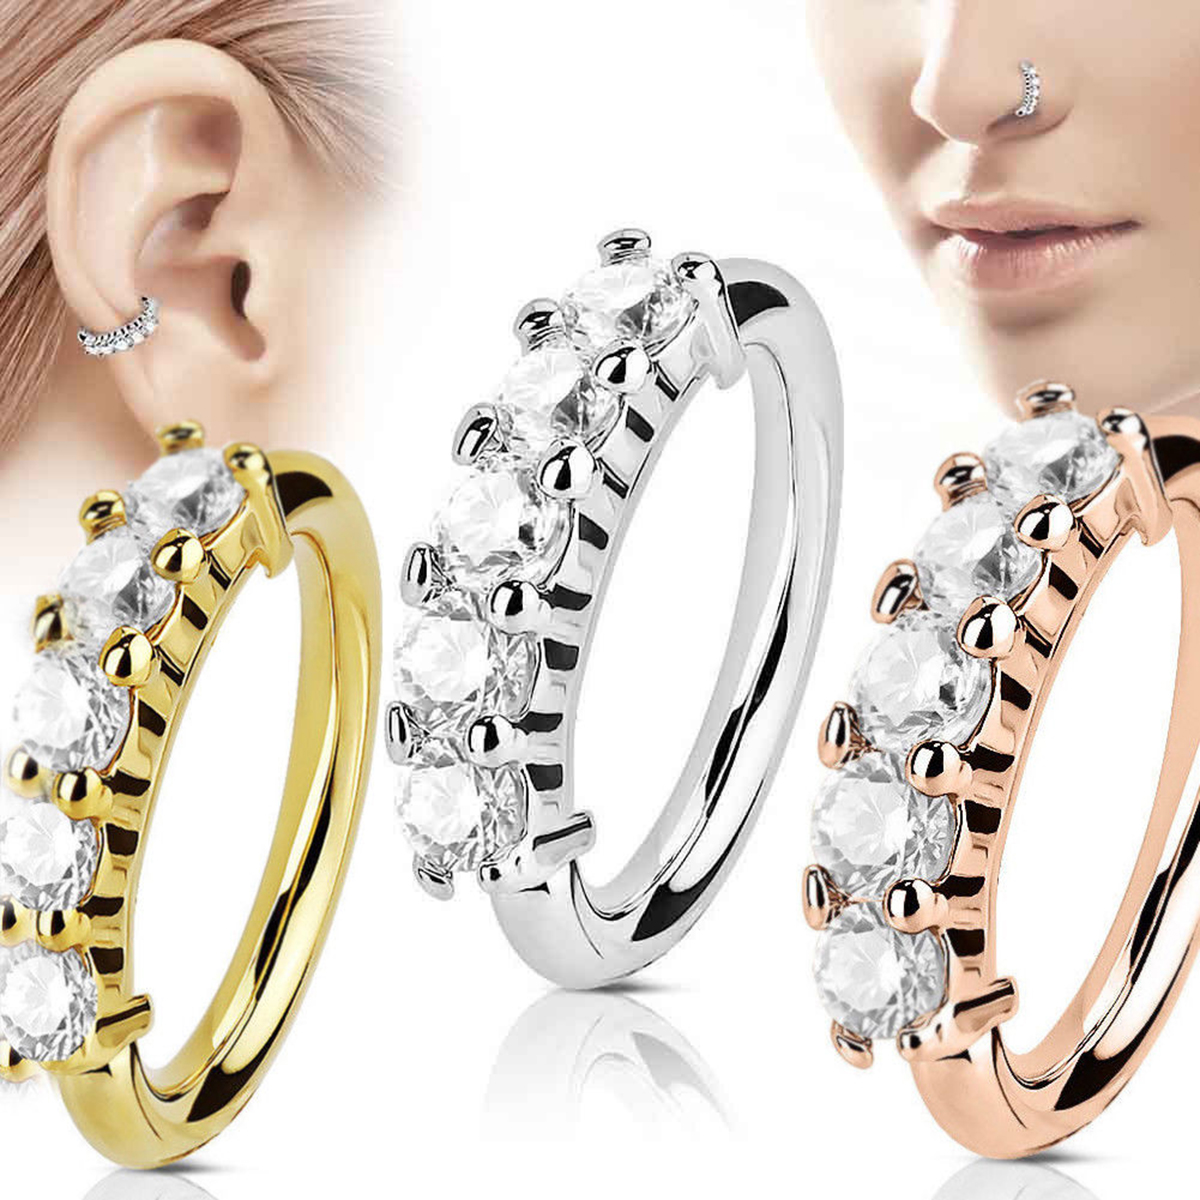 Shellhard Trendy 5 Crystals Nose Ring Vintage Rhinestone Stainless Steel Nose Hoop Ring For Women Femme Jewelry Bijoux